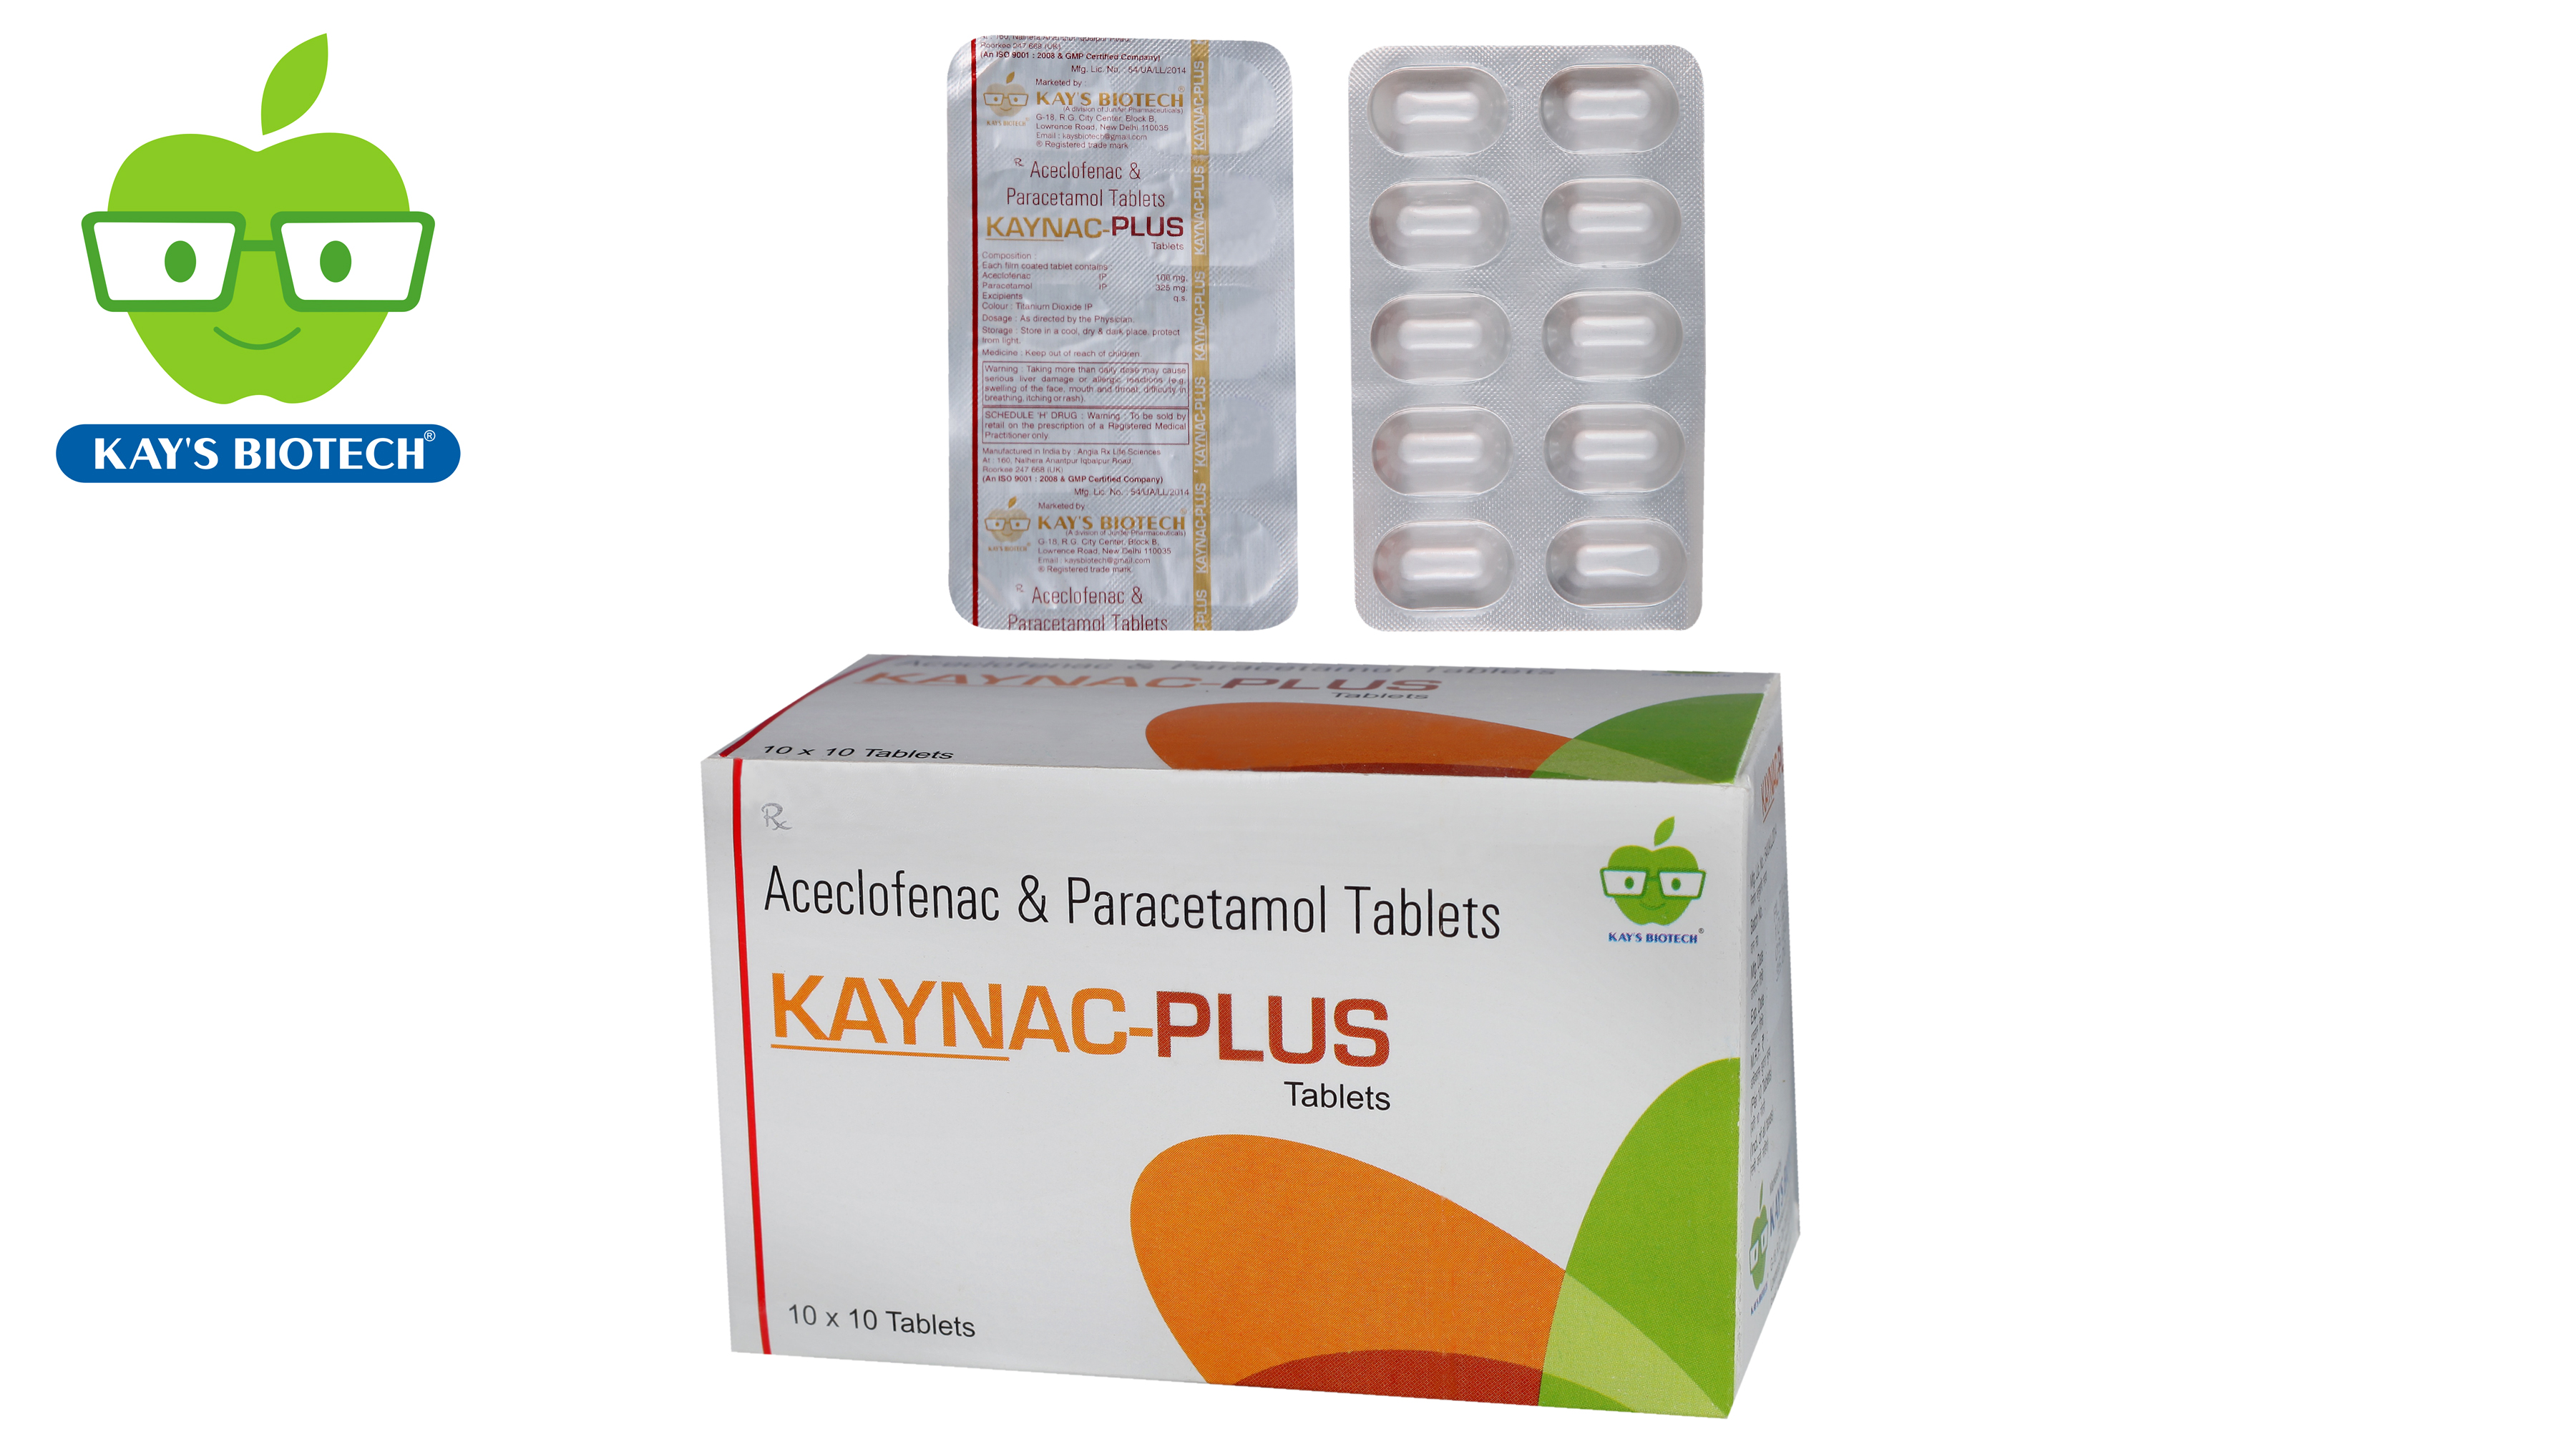 Kay's Biotech :: Our Products